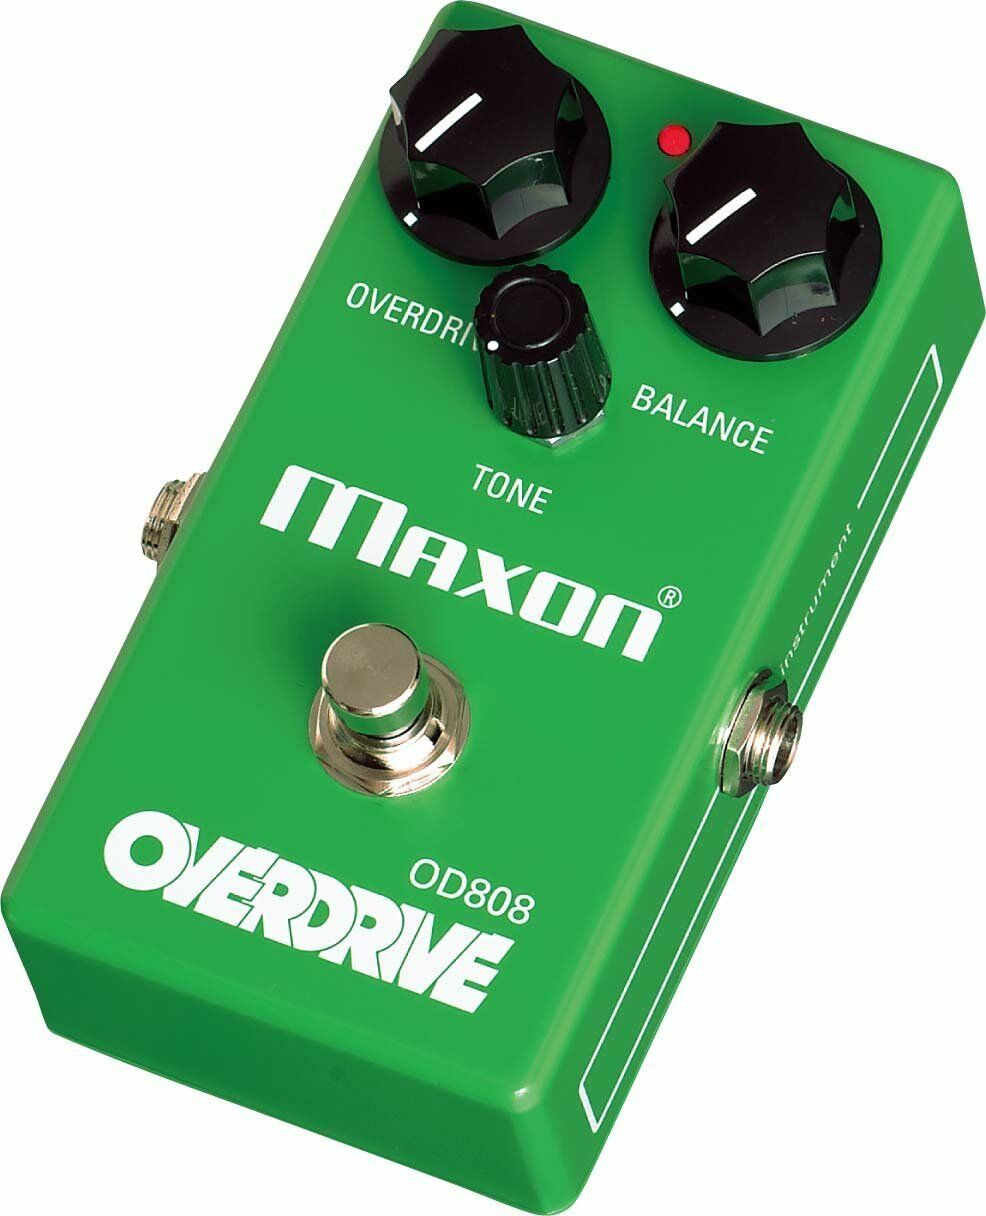 NEW MAXON OD808 OVERDRIVE EFFECT ELECTRIC GUITAR EFFECT PEDAL